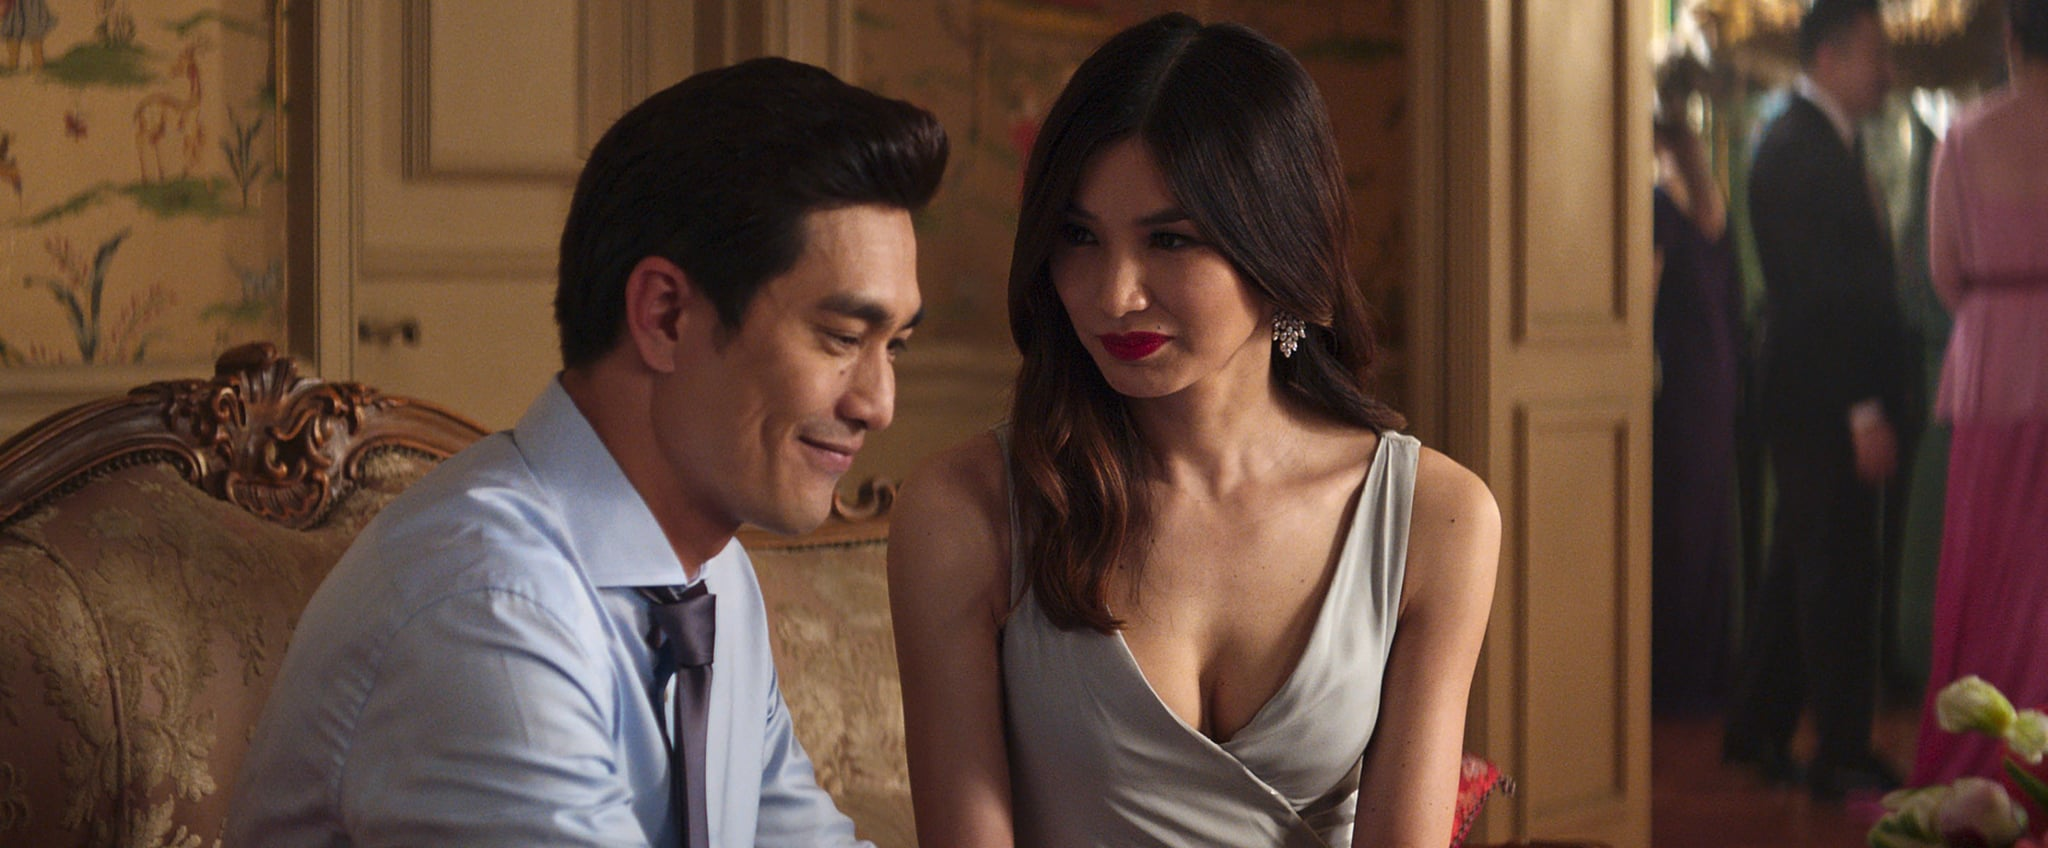 Is There a Postcredits Scene in Crazy Rich Asians?